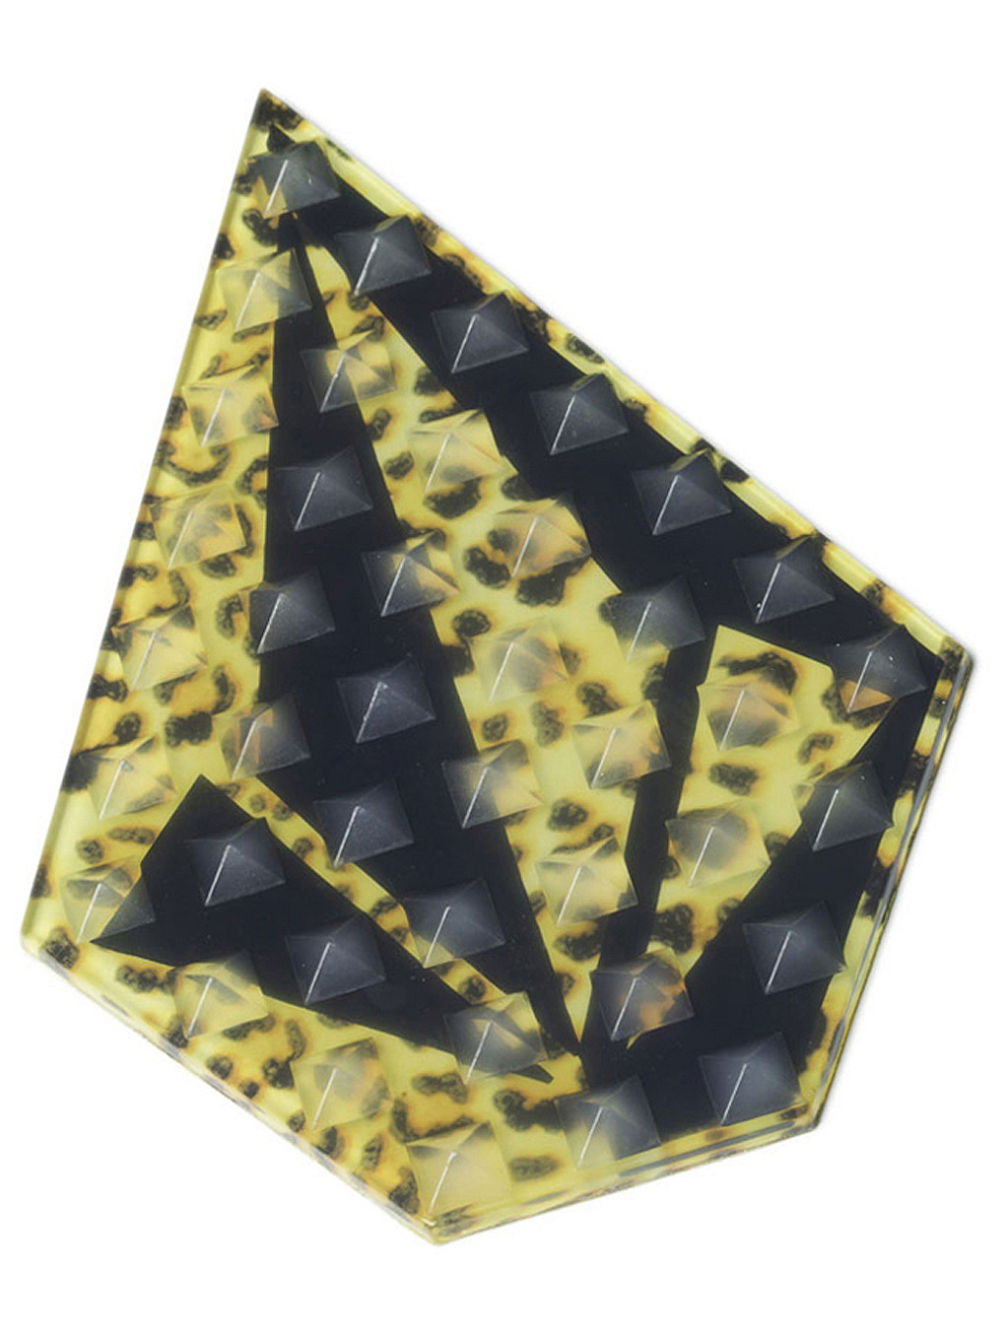 39c5a37162f4 Buy Volcom Stone Stomp Pad online at Blue Tomato